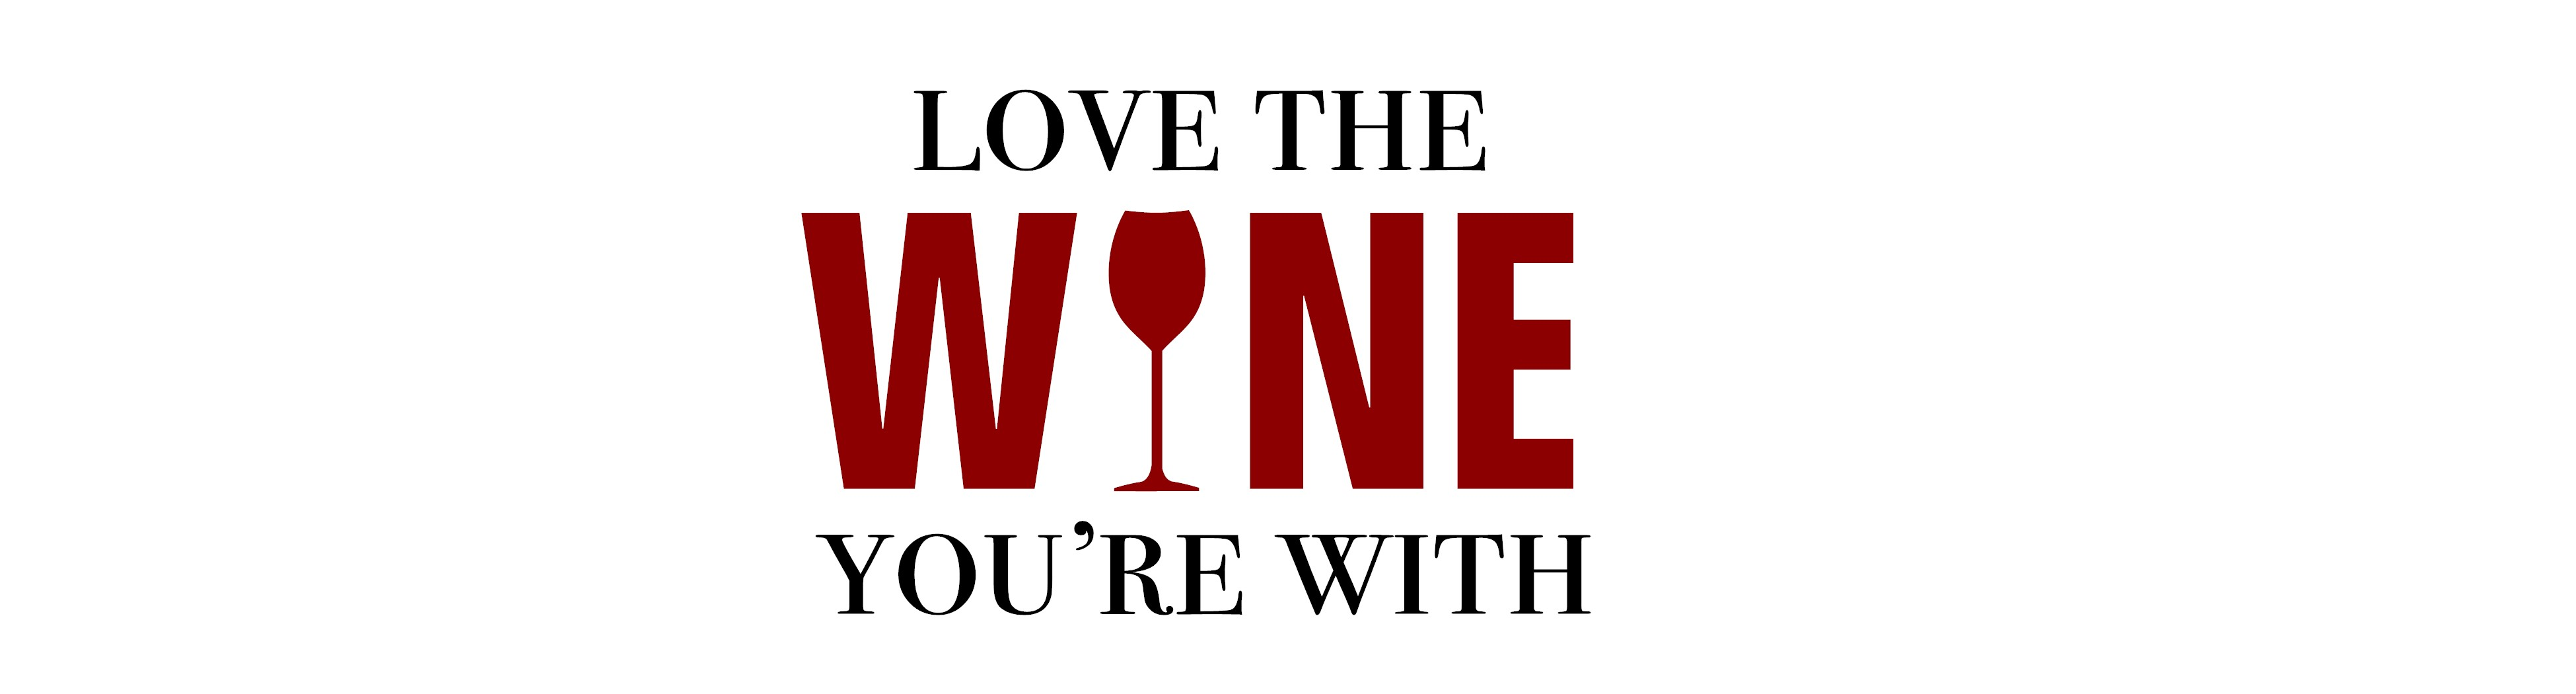 Wine-Love the Wine You're With